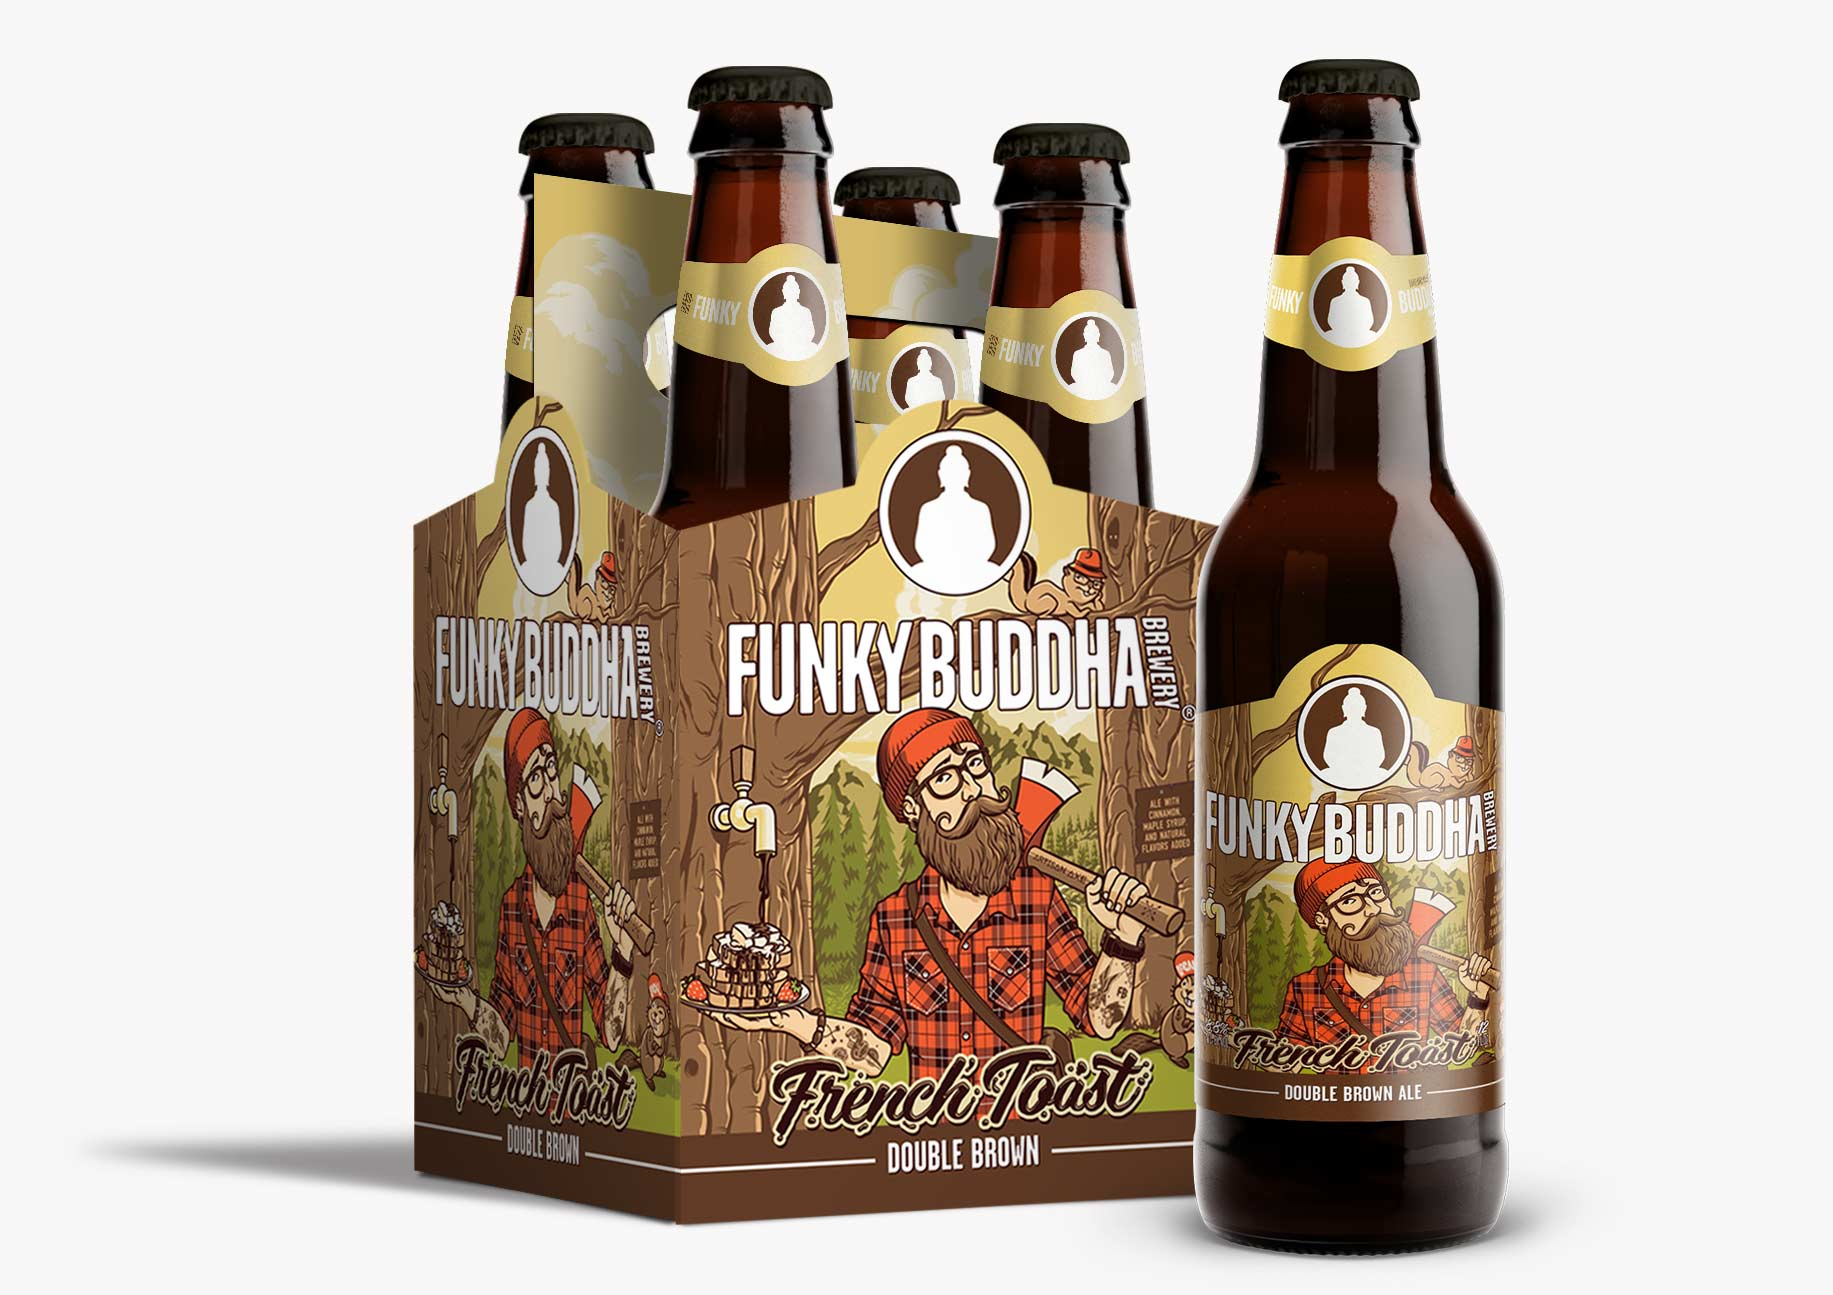 Funky Buddha Brewery French Toast Double Brown Artwork Illustration and Design